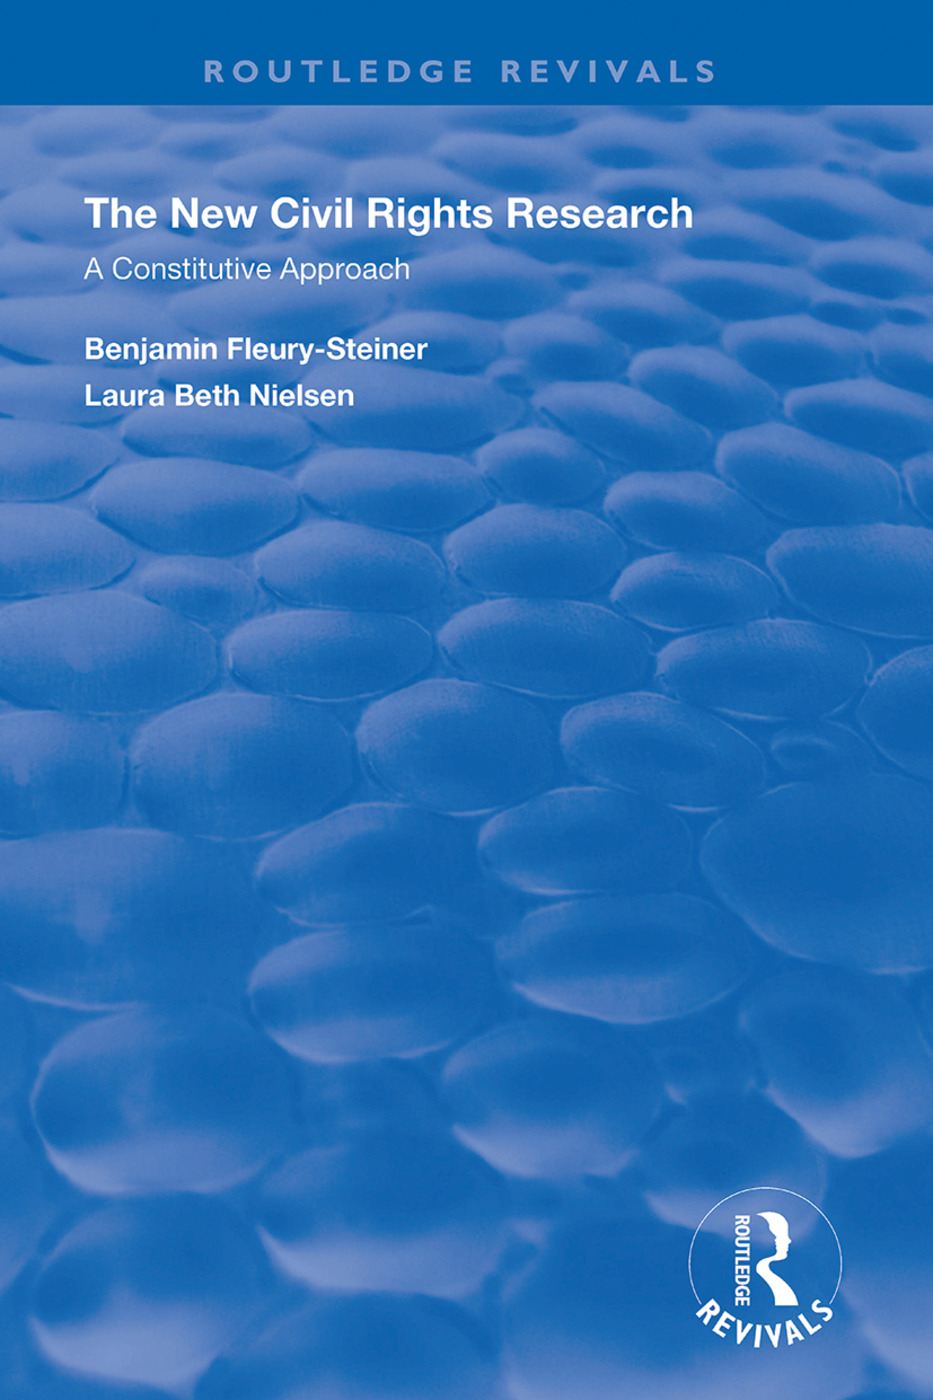 The New Civil Rights Research: A Constitutive Approach book cover